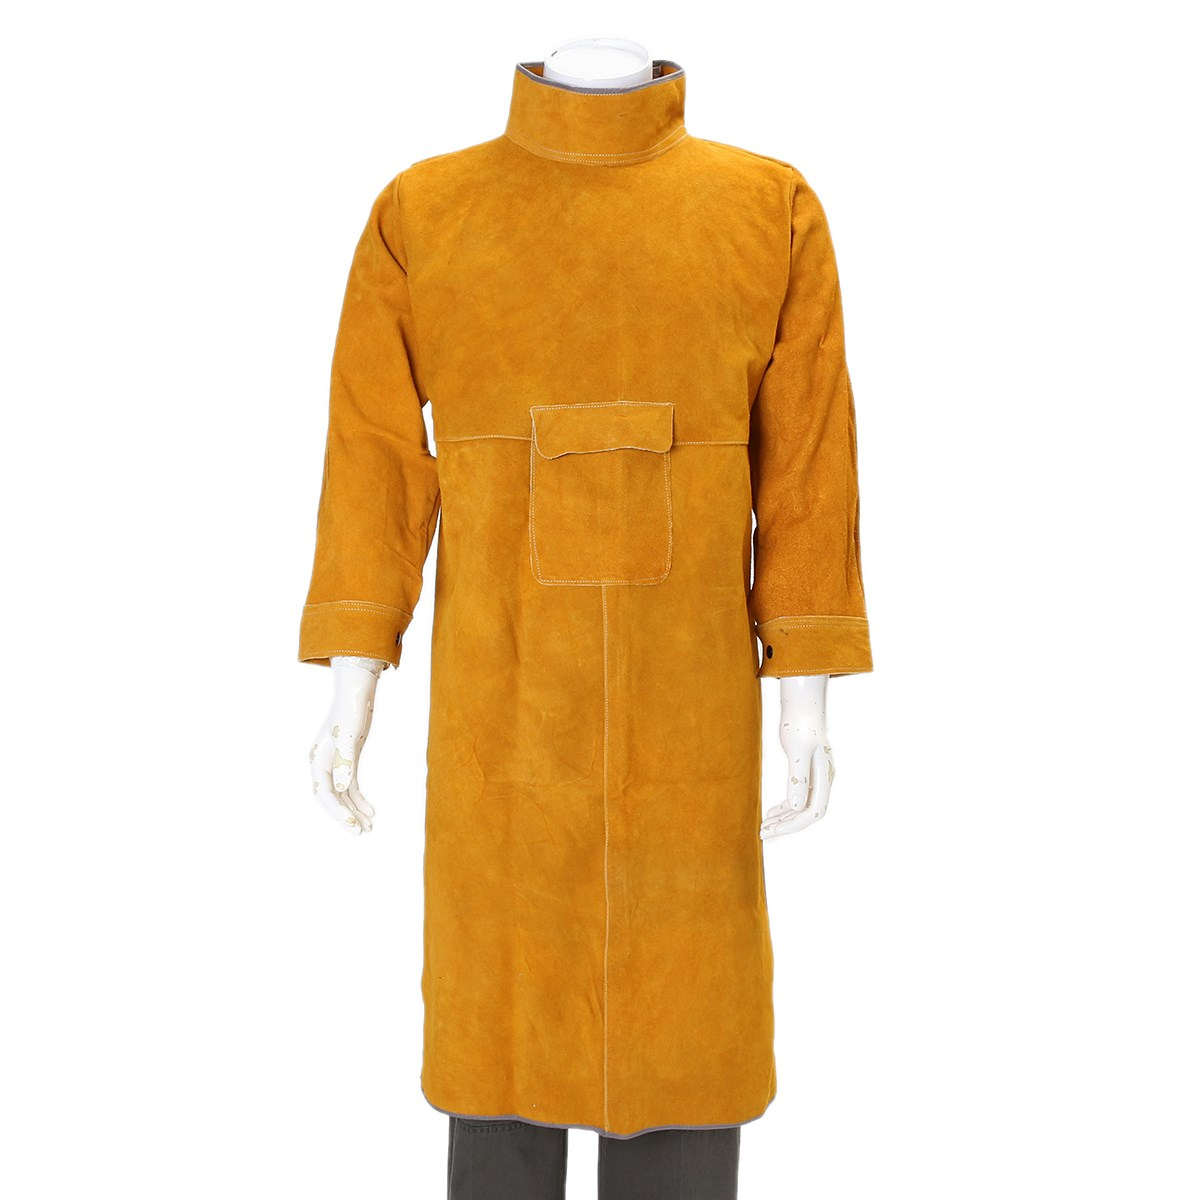 NEW Durable Leather Welding Long Coat Apron Protective Clothing Apparel Suit Welder Workplace Safety Clothing leather welding long coat apron protective clothing apparel suit welder workplace safety clothing page 3